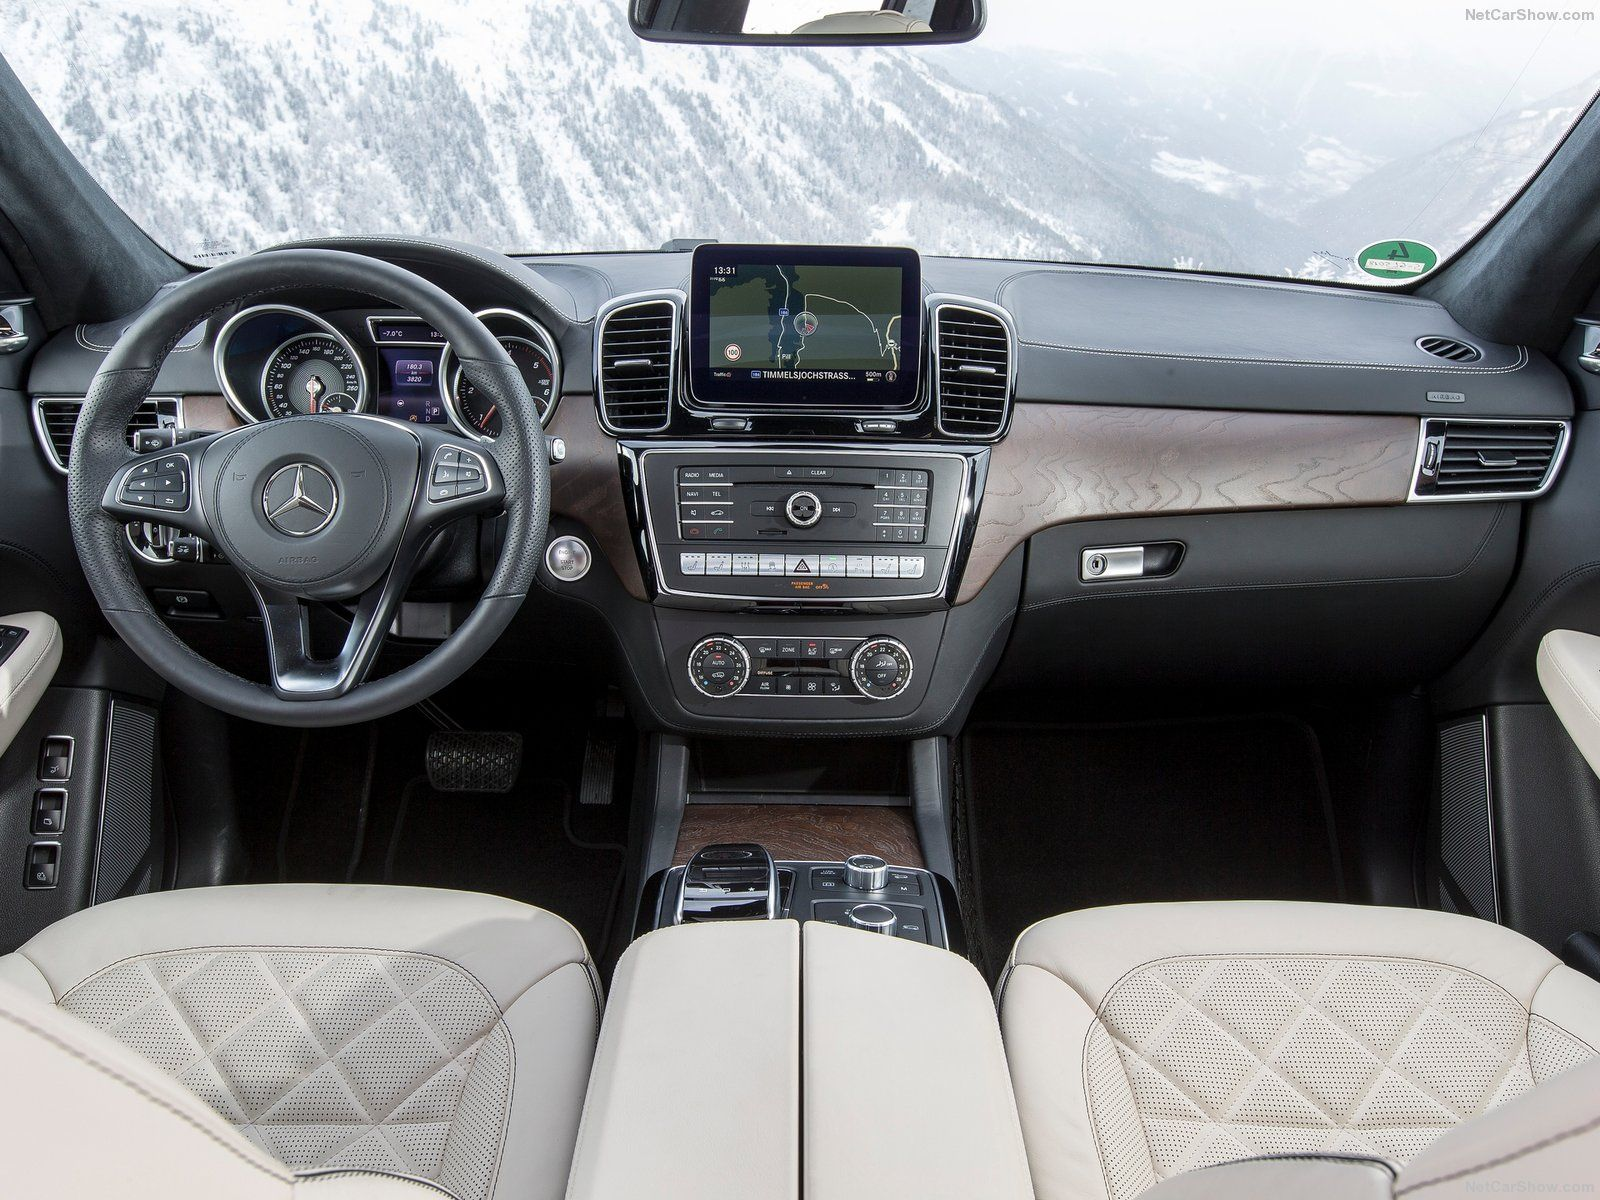 Gls Class Interior With Images Mercedes Benz Mercedes